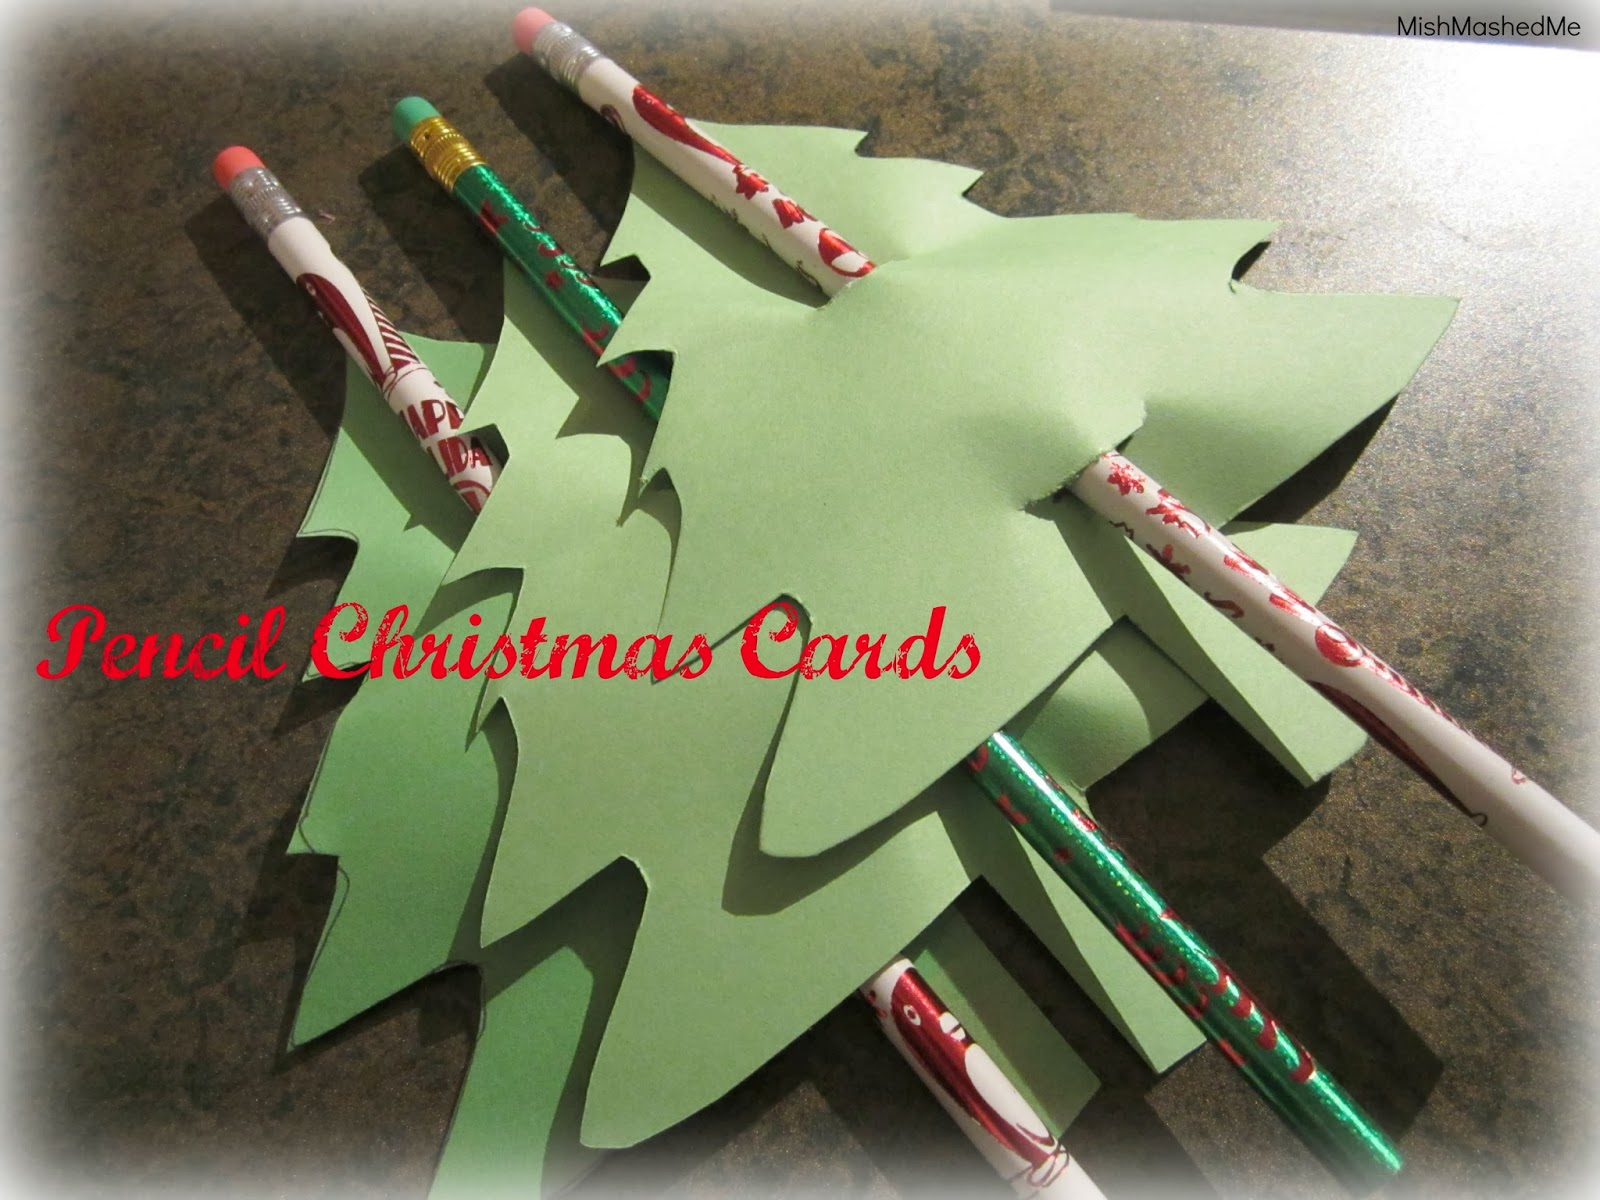 MishMashedMe: 30 Days of D.I.Y. Gifts and Decor: Pencil Christmas Cards